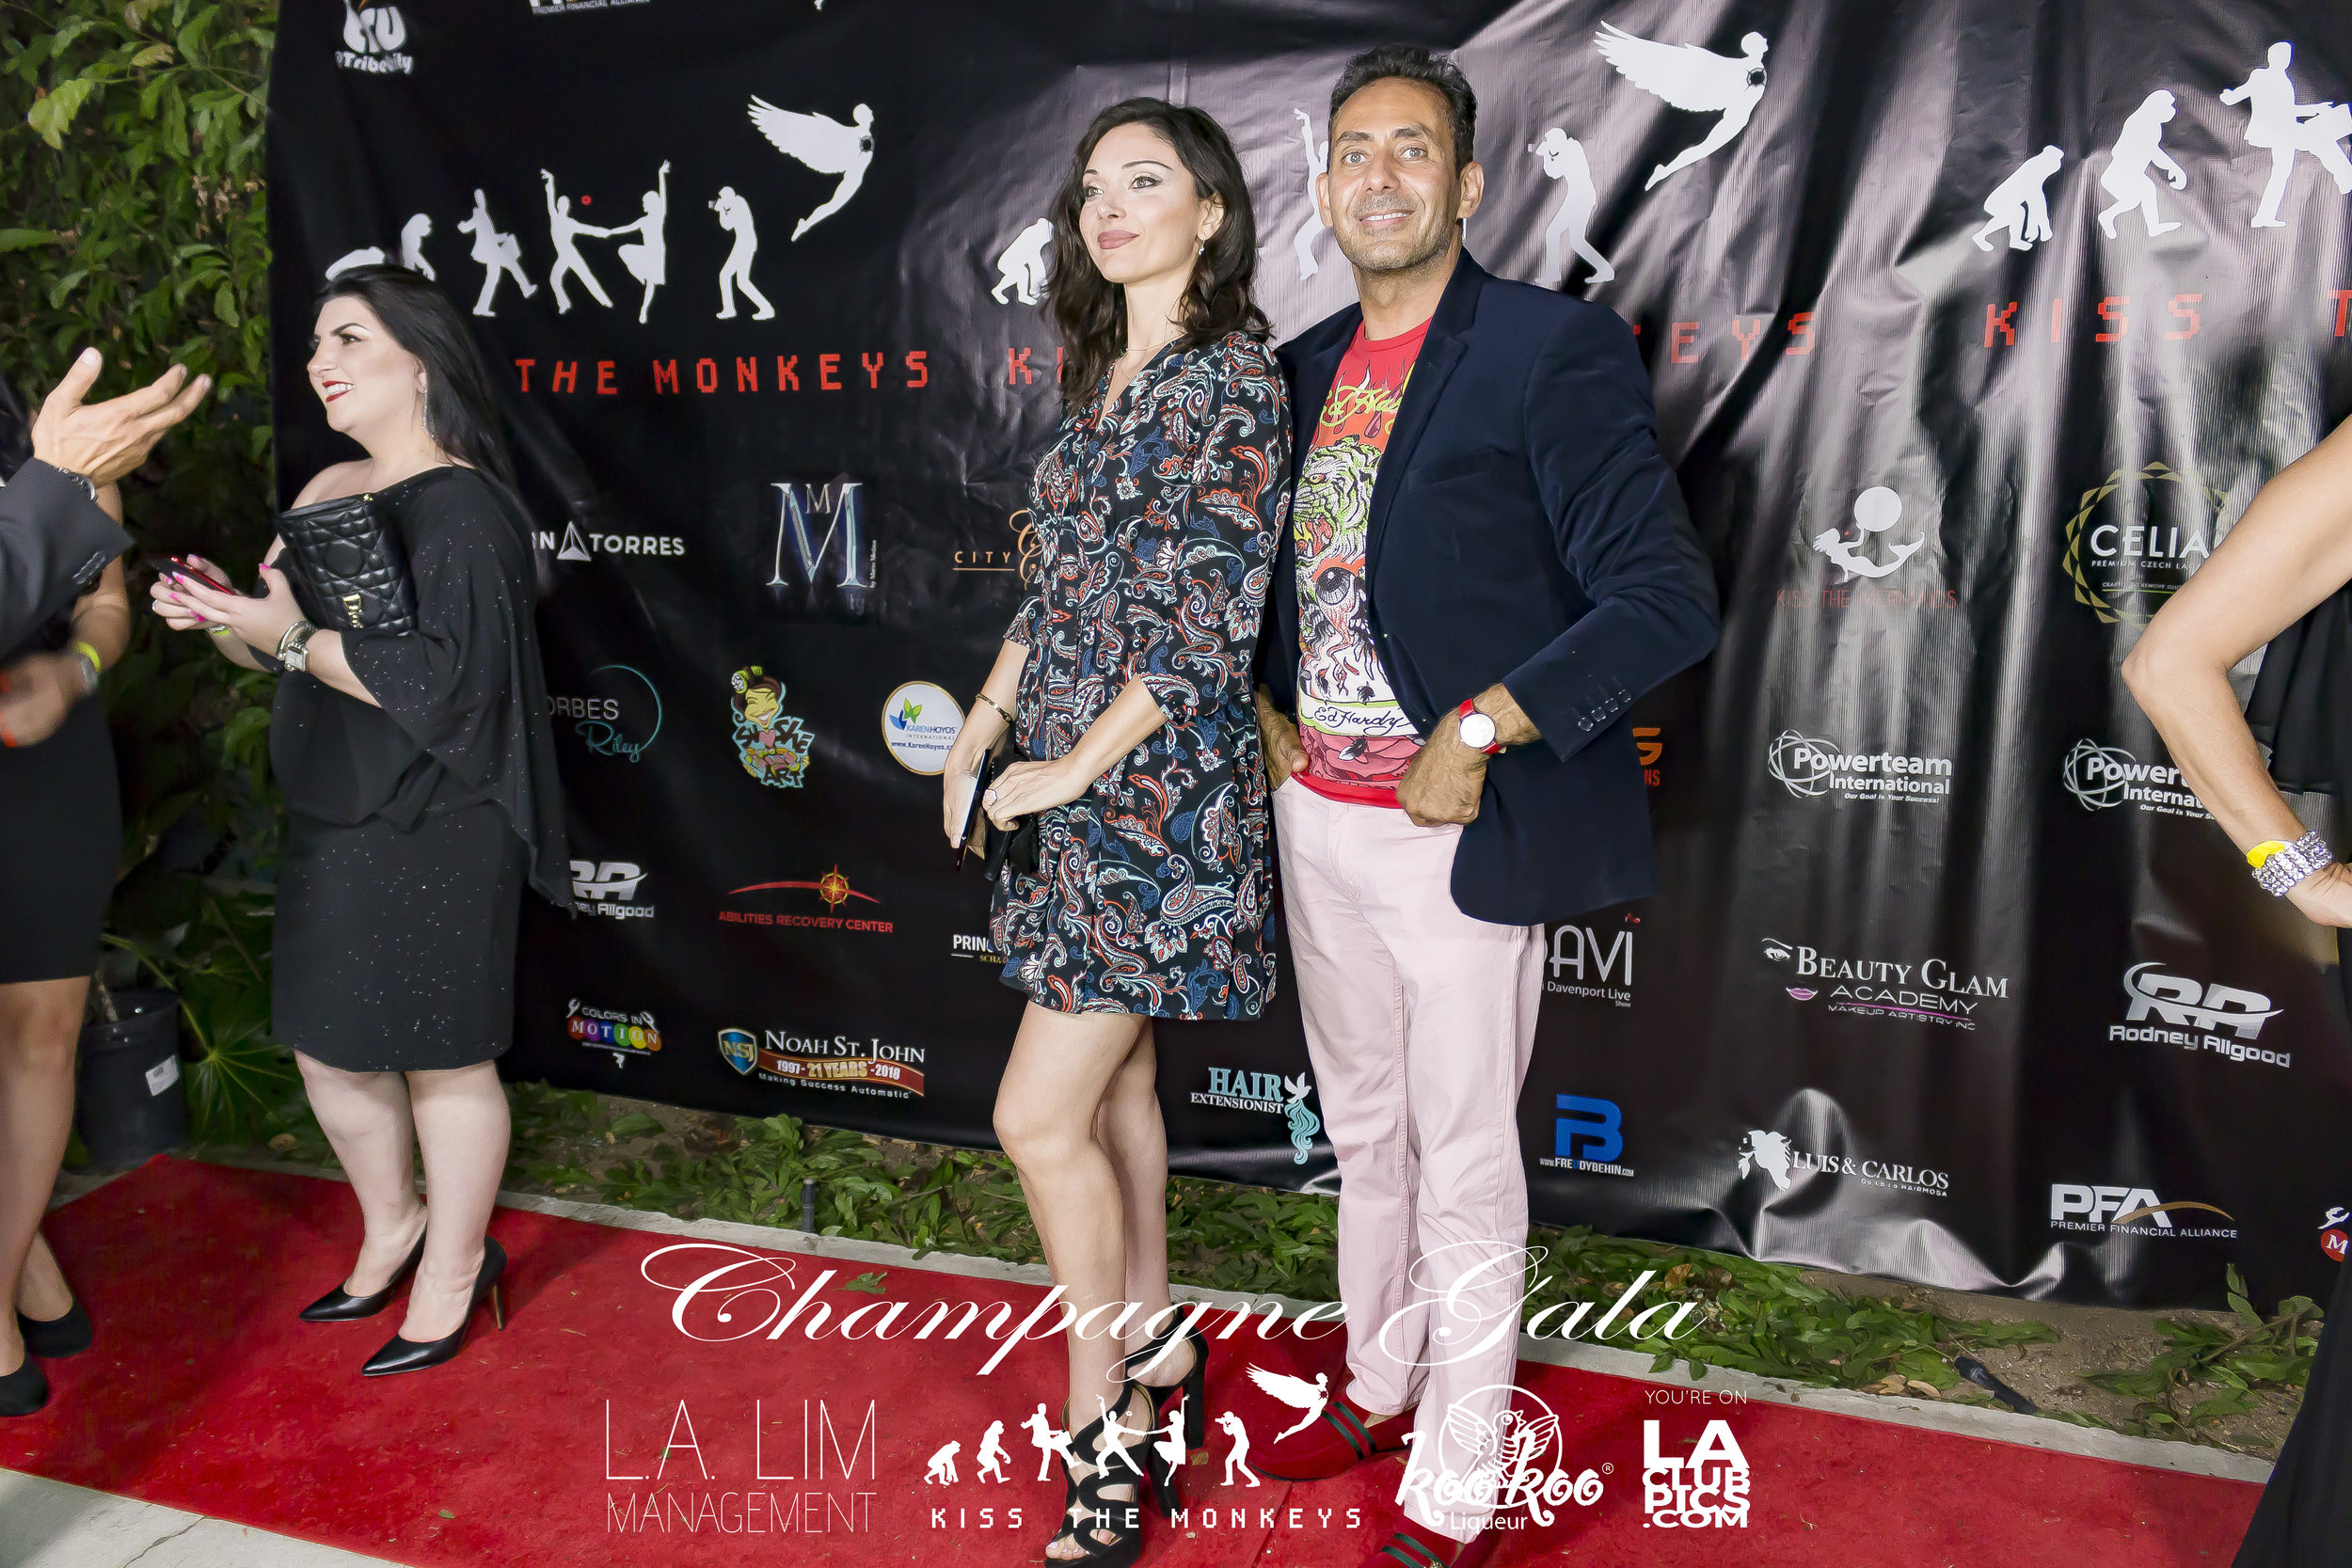 Kiss The Monkeys - Champagne Gala - 07-21-18_52.jpg